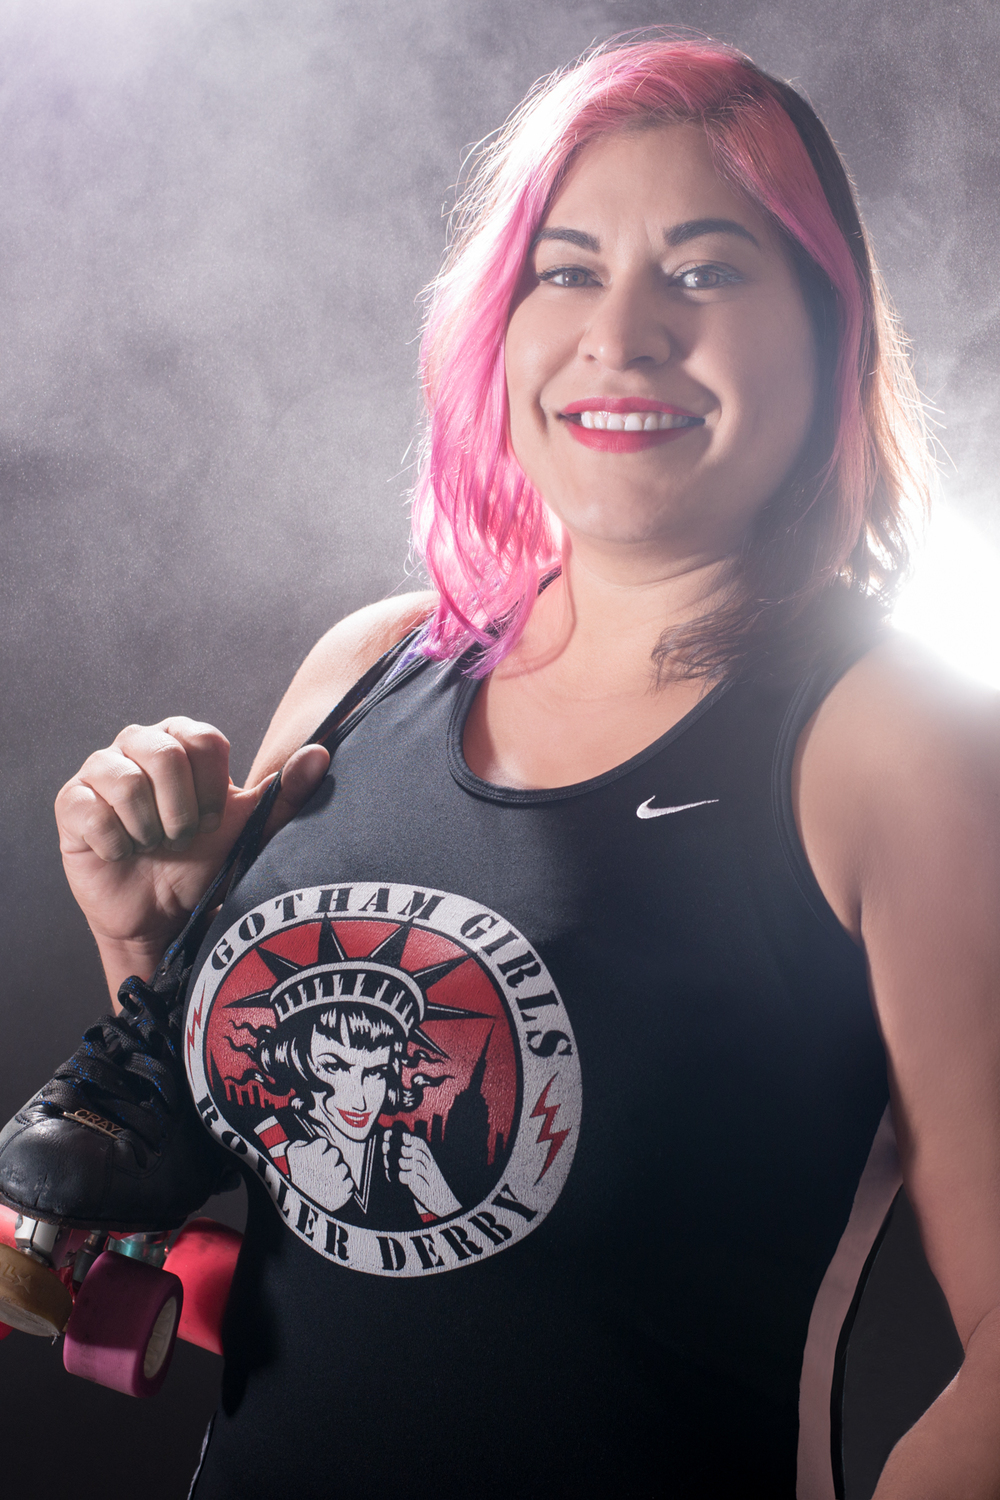 Back in January I had the pleasure of doing a portrait session with Team U.S.A. member and Gotham Roller Girls All-Star player, Mick Swagger. She wanted to create some strong athletic portraits to help launch her derby career move of switching from player to coach. For those of you who don't know, I was an original member of Portland's Rose City Roller. I played derby for 6 years and coached for 2 years so portraits like these always have a special place in my heart.